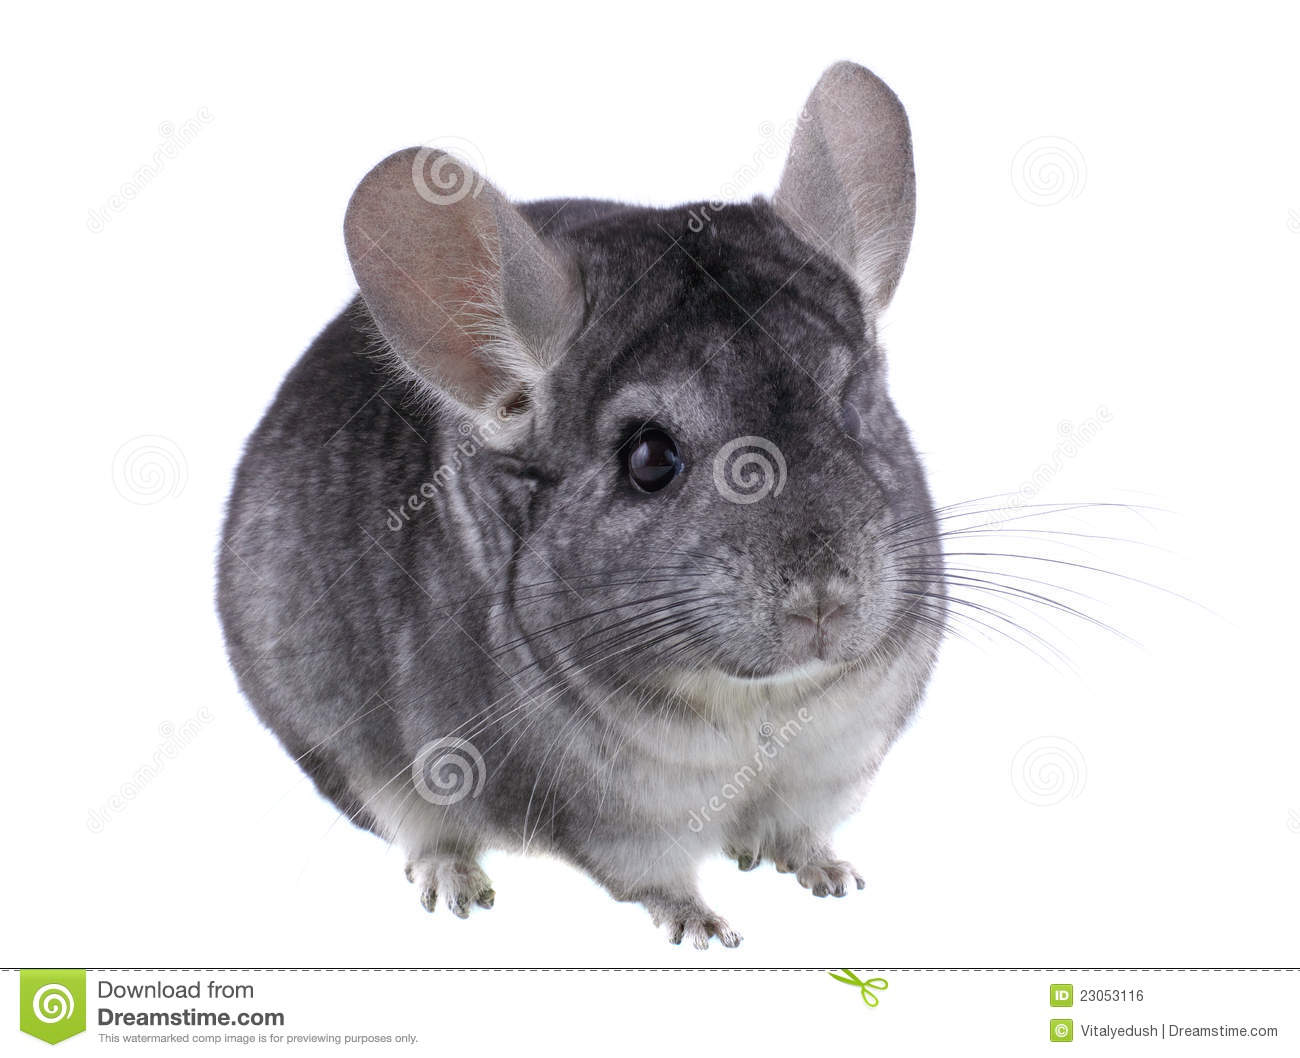 chinchilla singles 100% free online dating in chinchilla 1,500,000 daily active members.